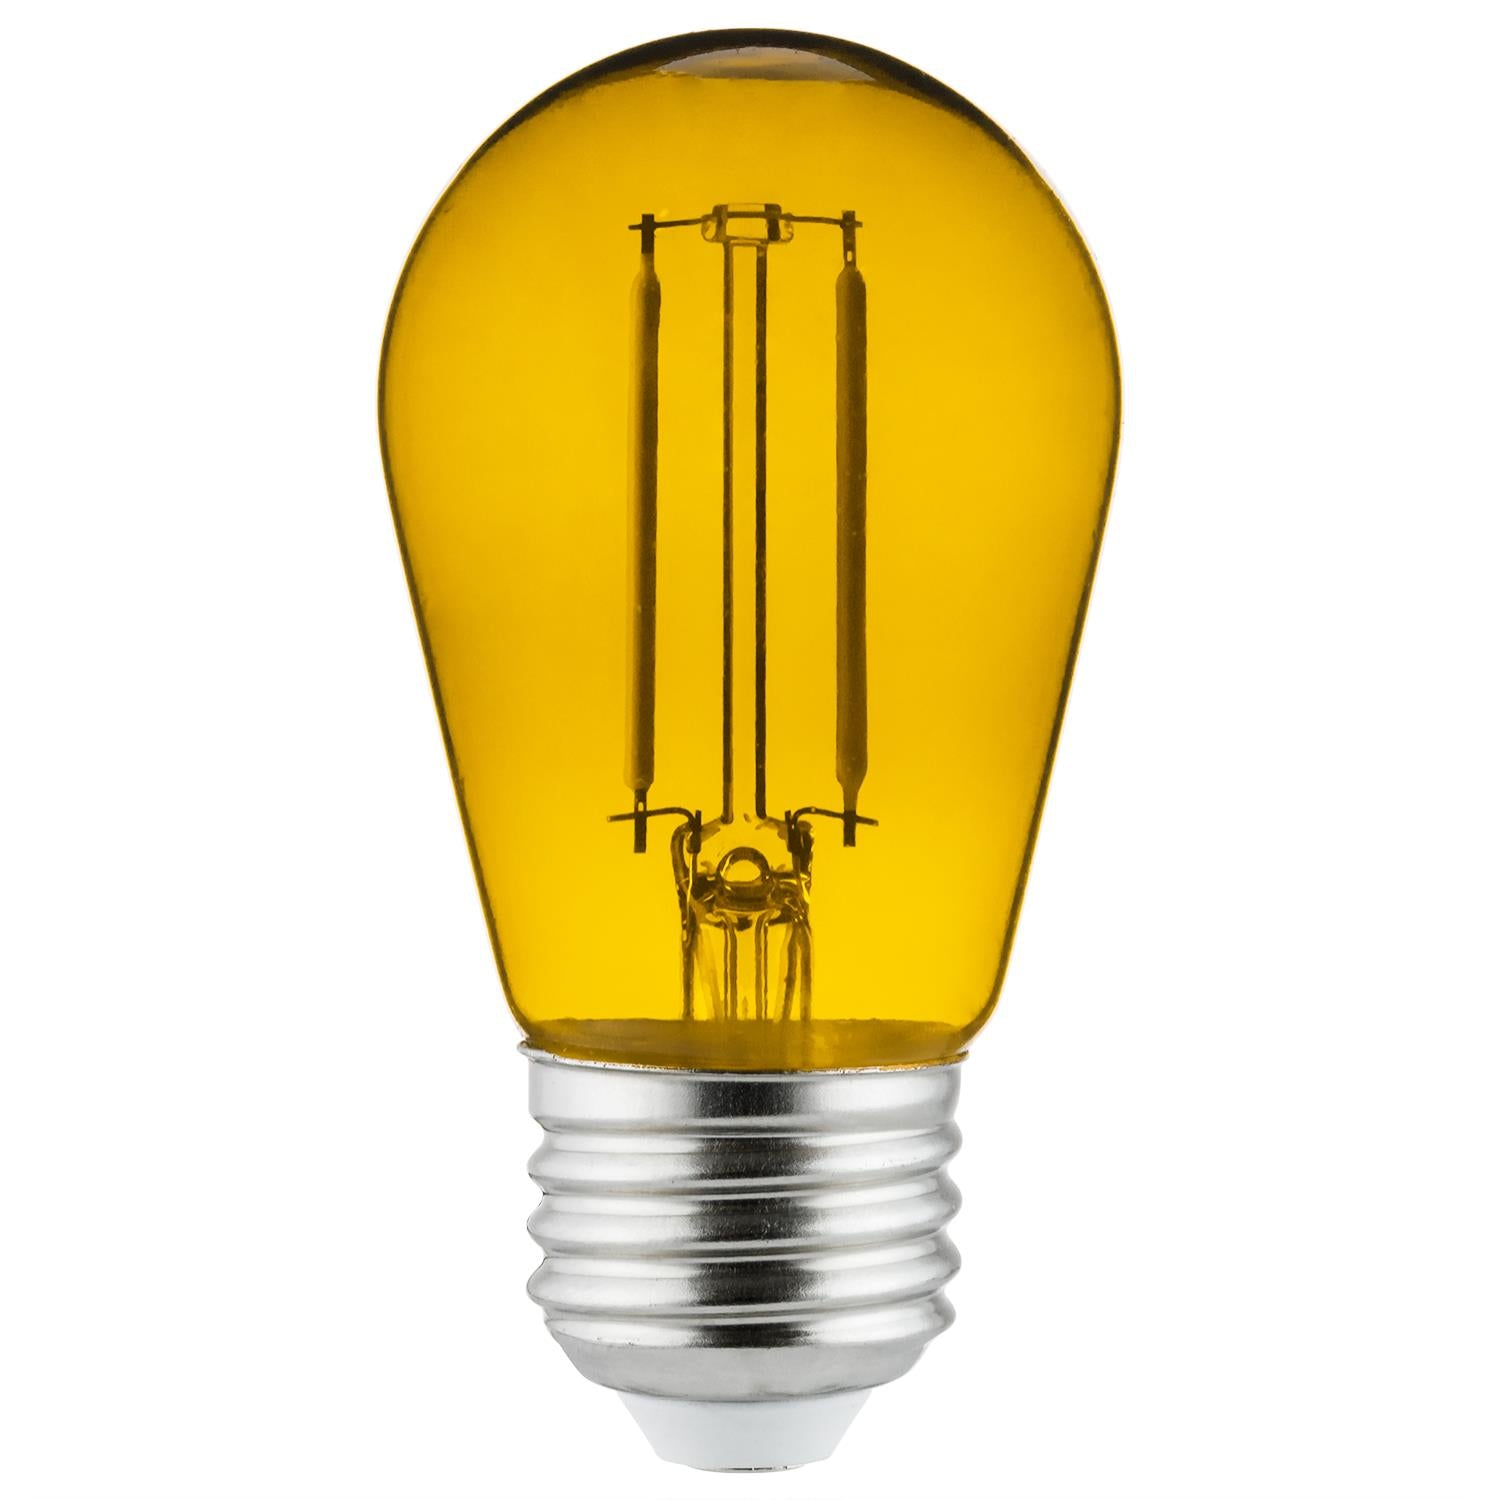 SUNLITE 2w LED Filament Transparent Yellow Colored Bulb